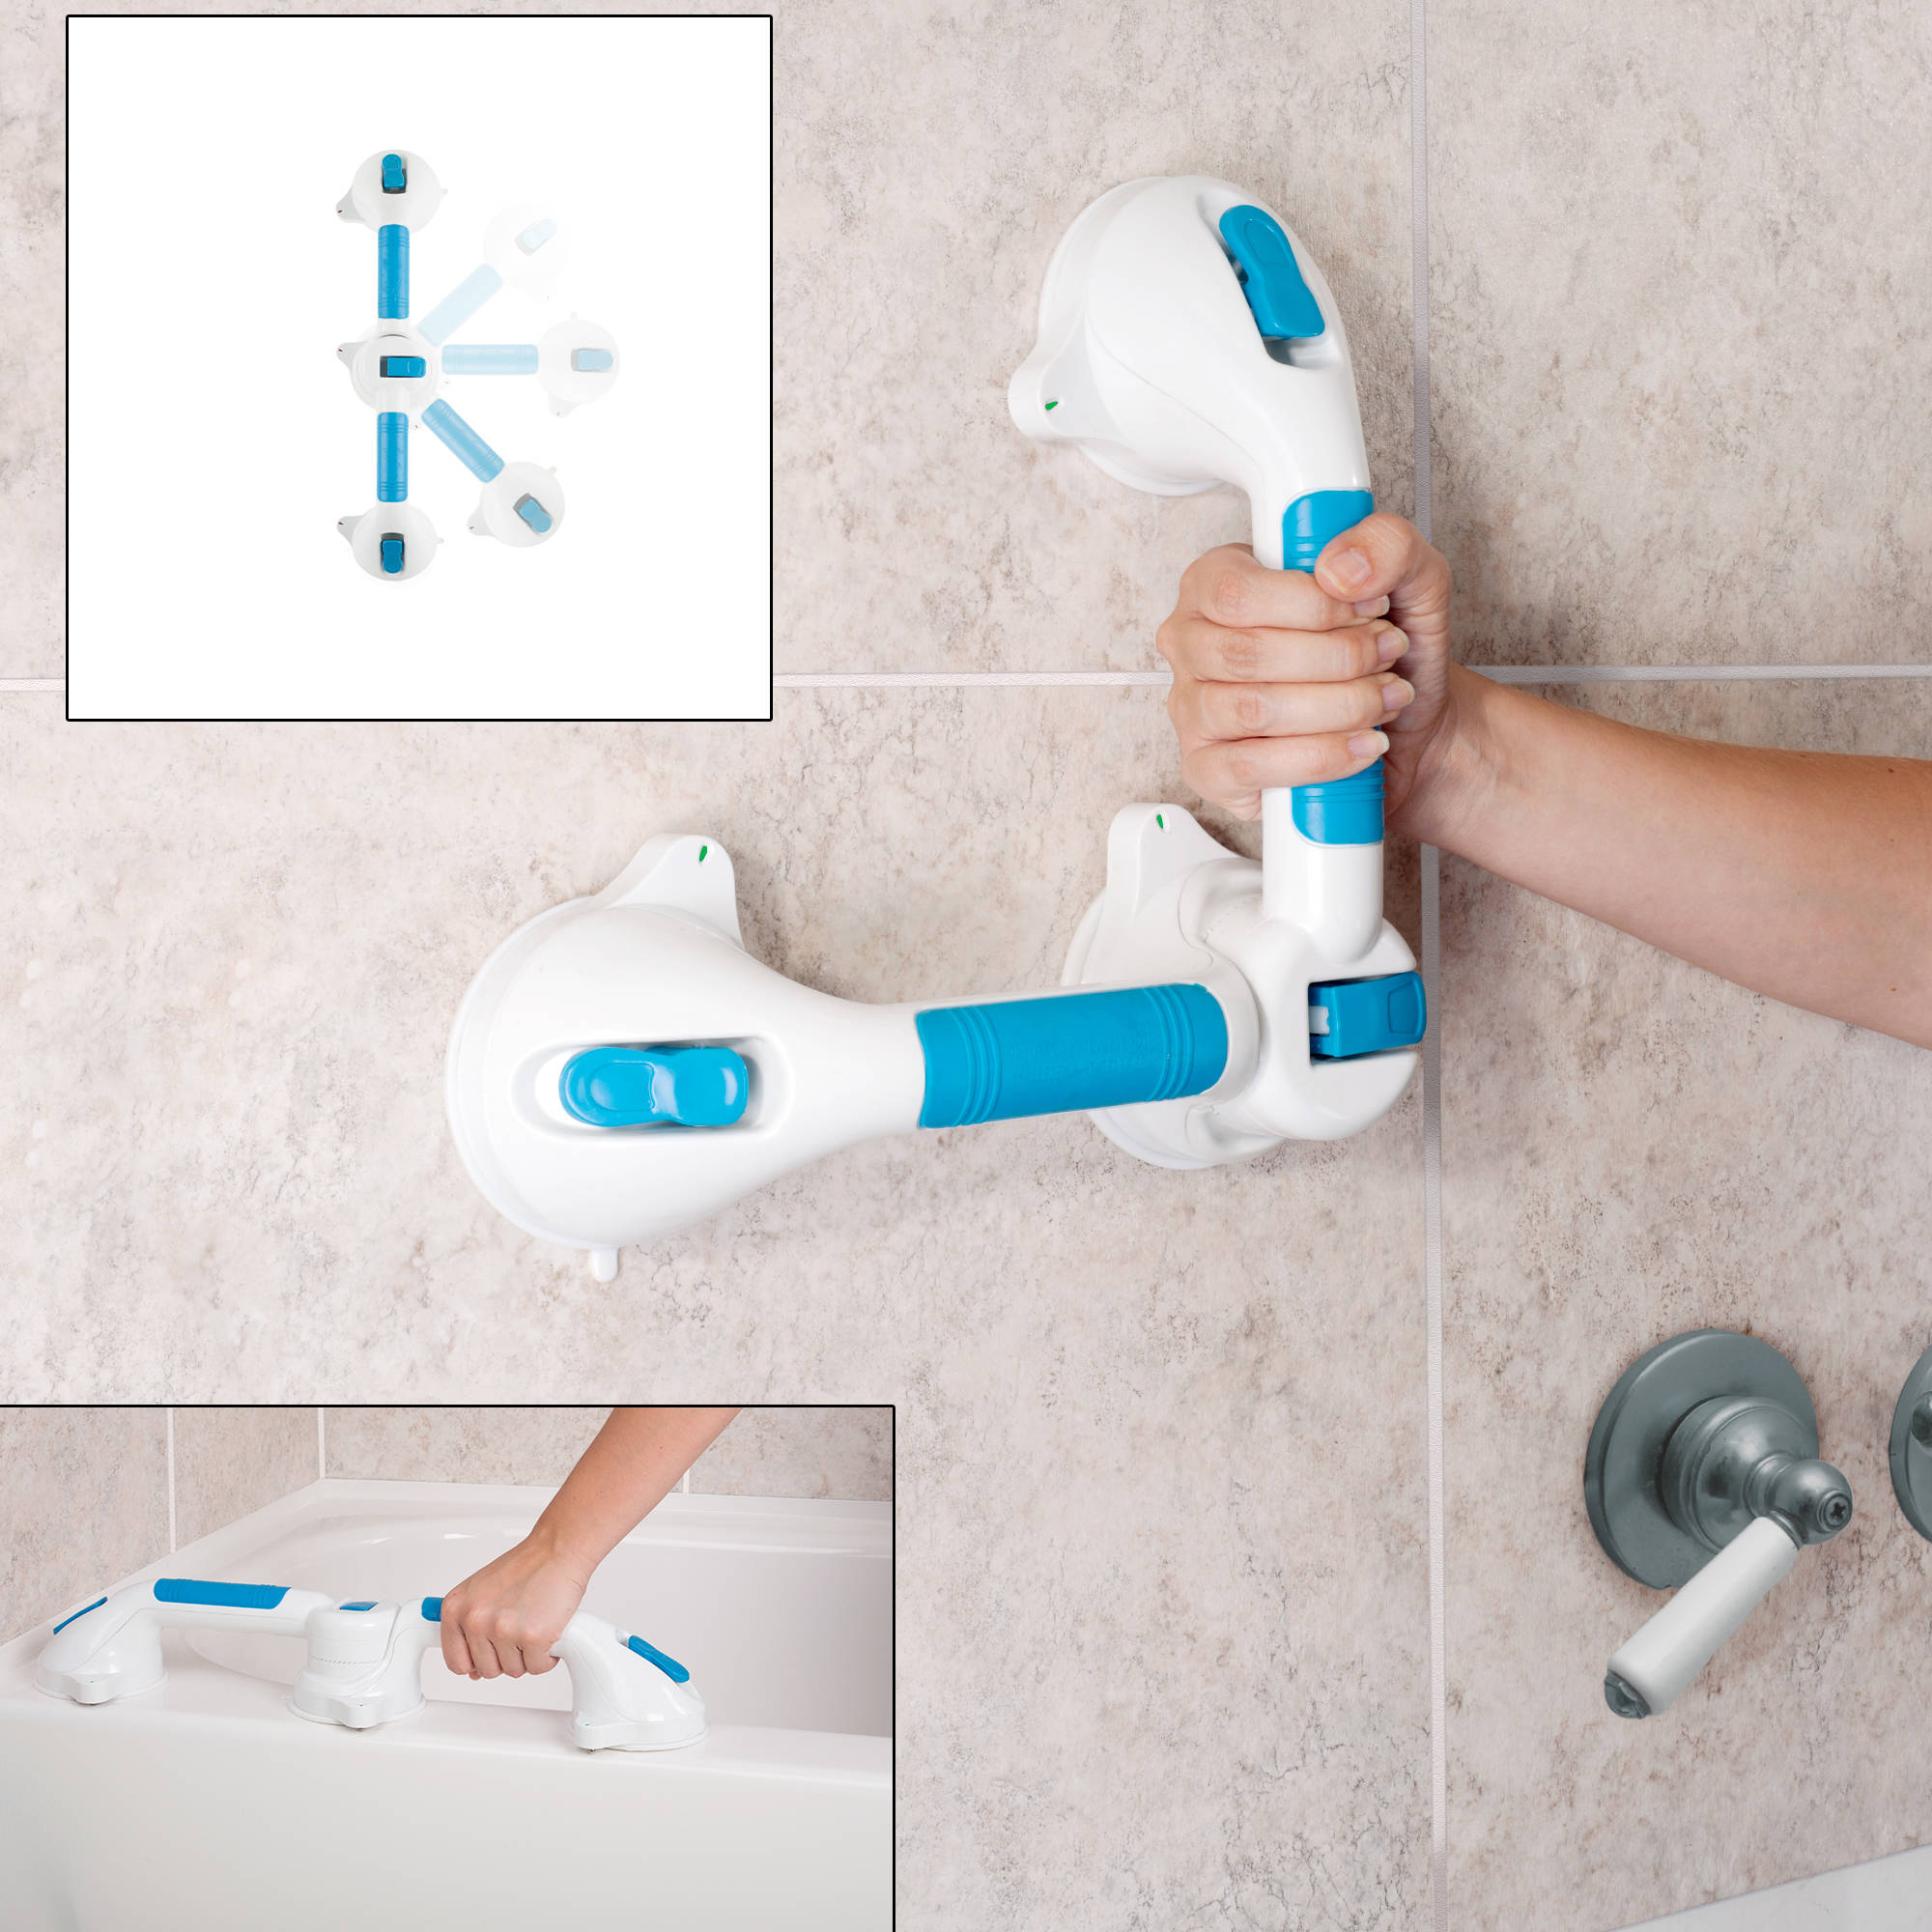 """Swivel Suction Shower Handle 20""""- 180 Degree Rotation Locking Suction Cup Grab Bar with Dual Grip for Shower and Tub Stability, Balance by Bluestone"""